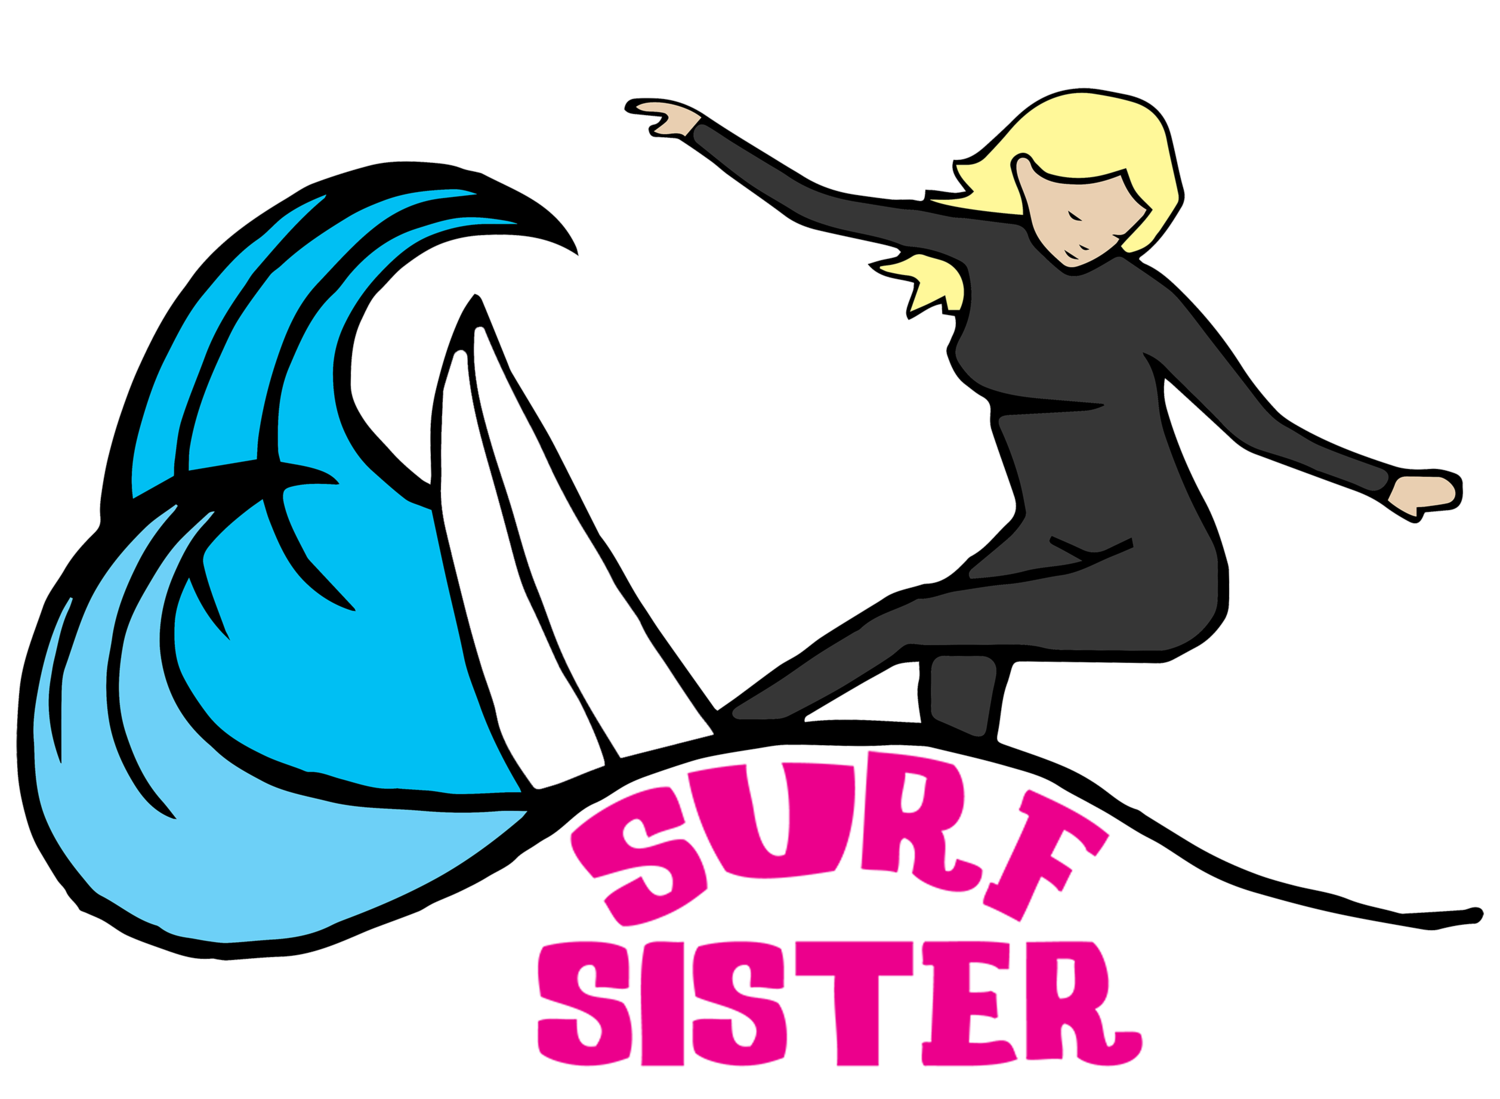 Surfing clipart surfer cartoon. Camps page surf sister